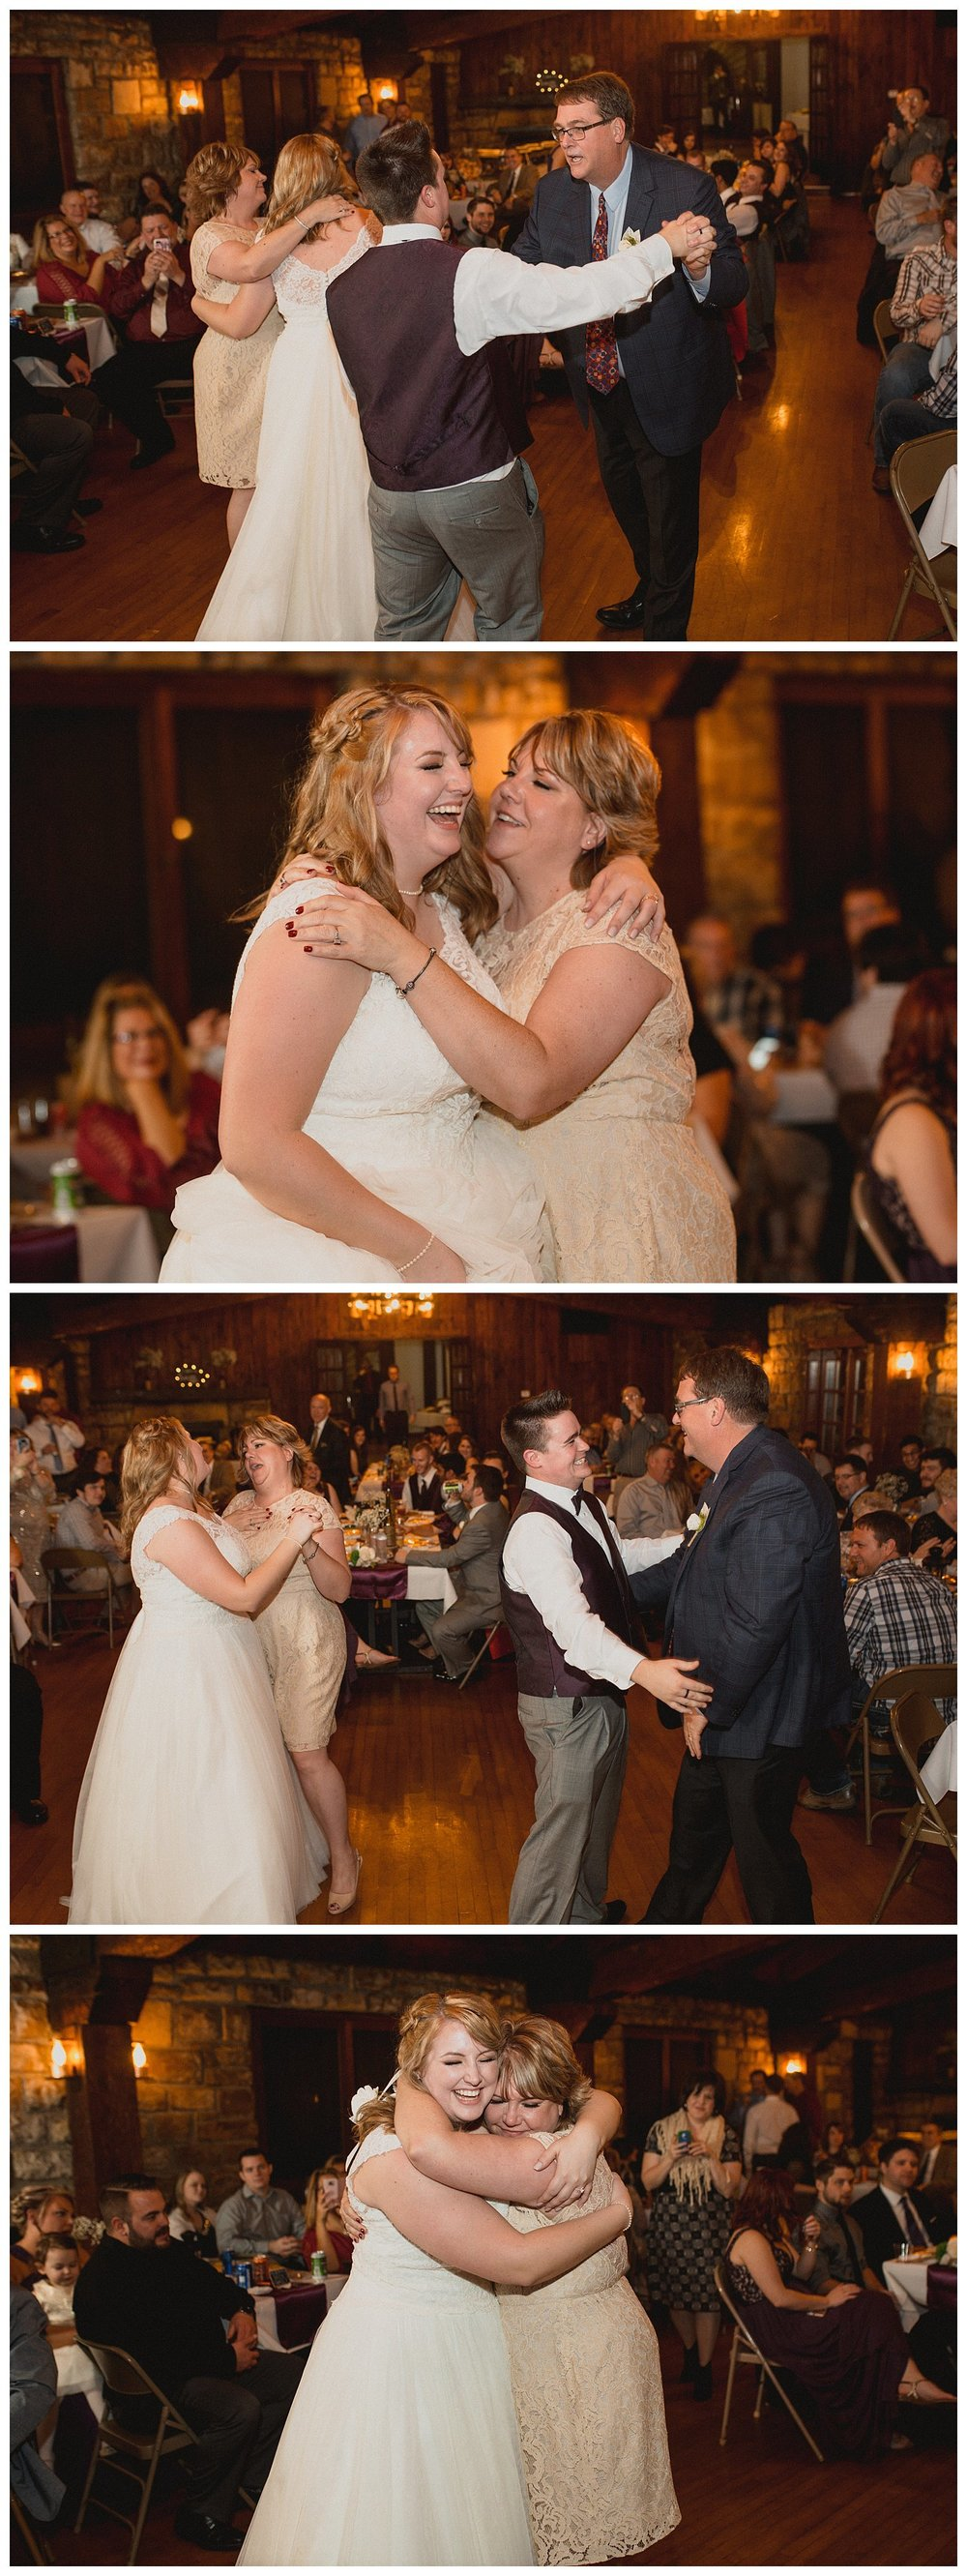 Kelsey_Diane_Photography_Loose_Mansion_Wedding_Photography_Kansas_City_Victor_Lyndsay_0388.jpg